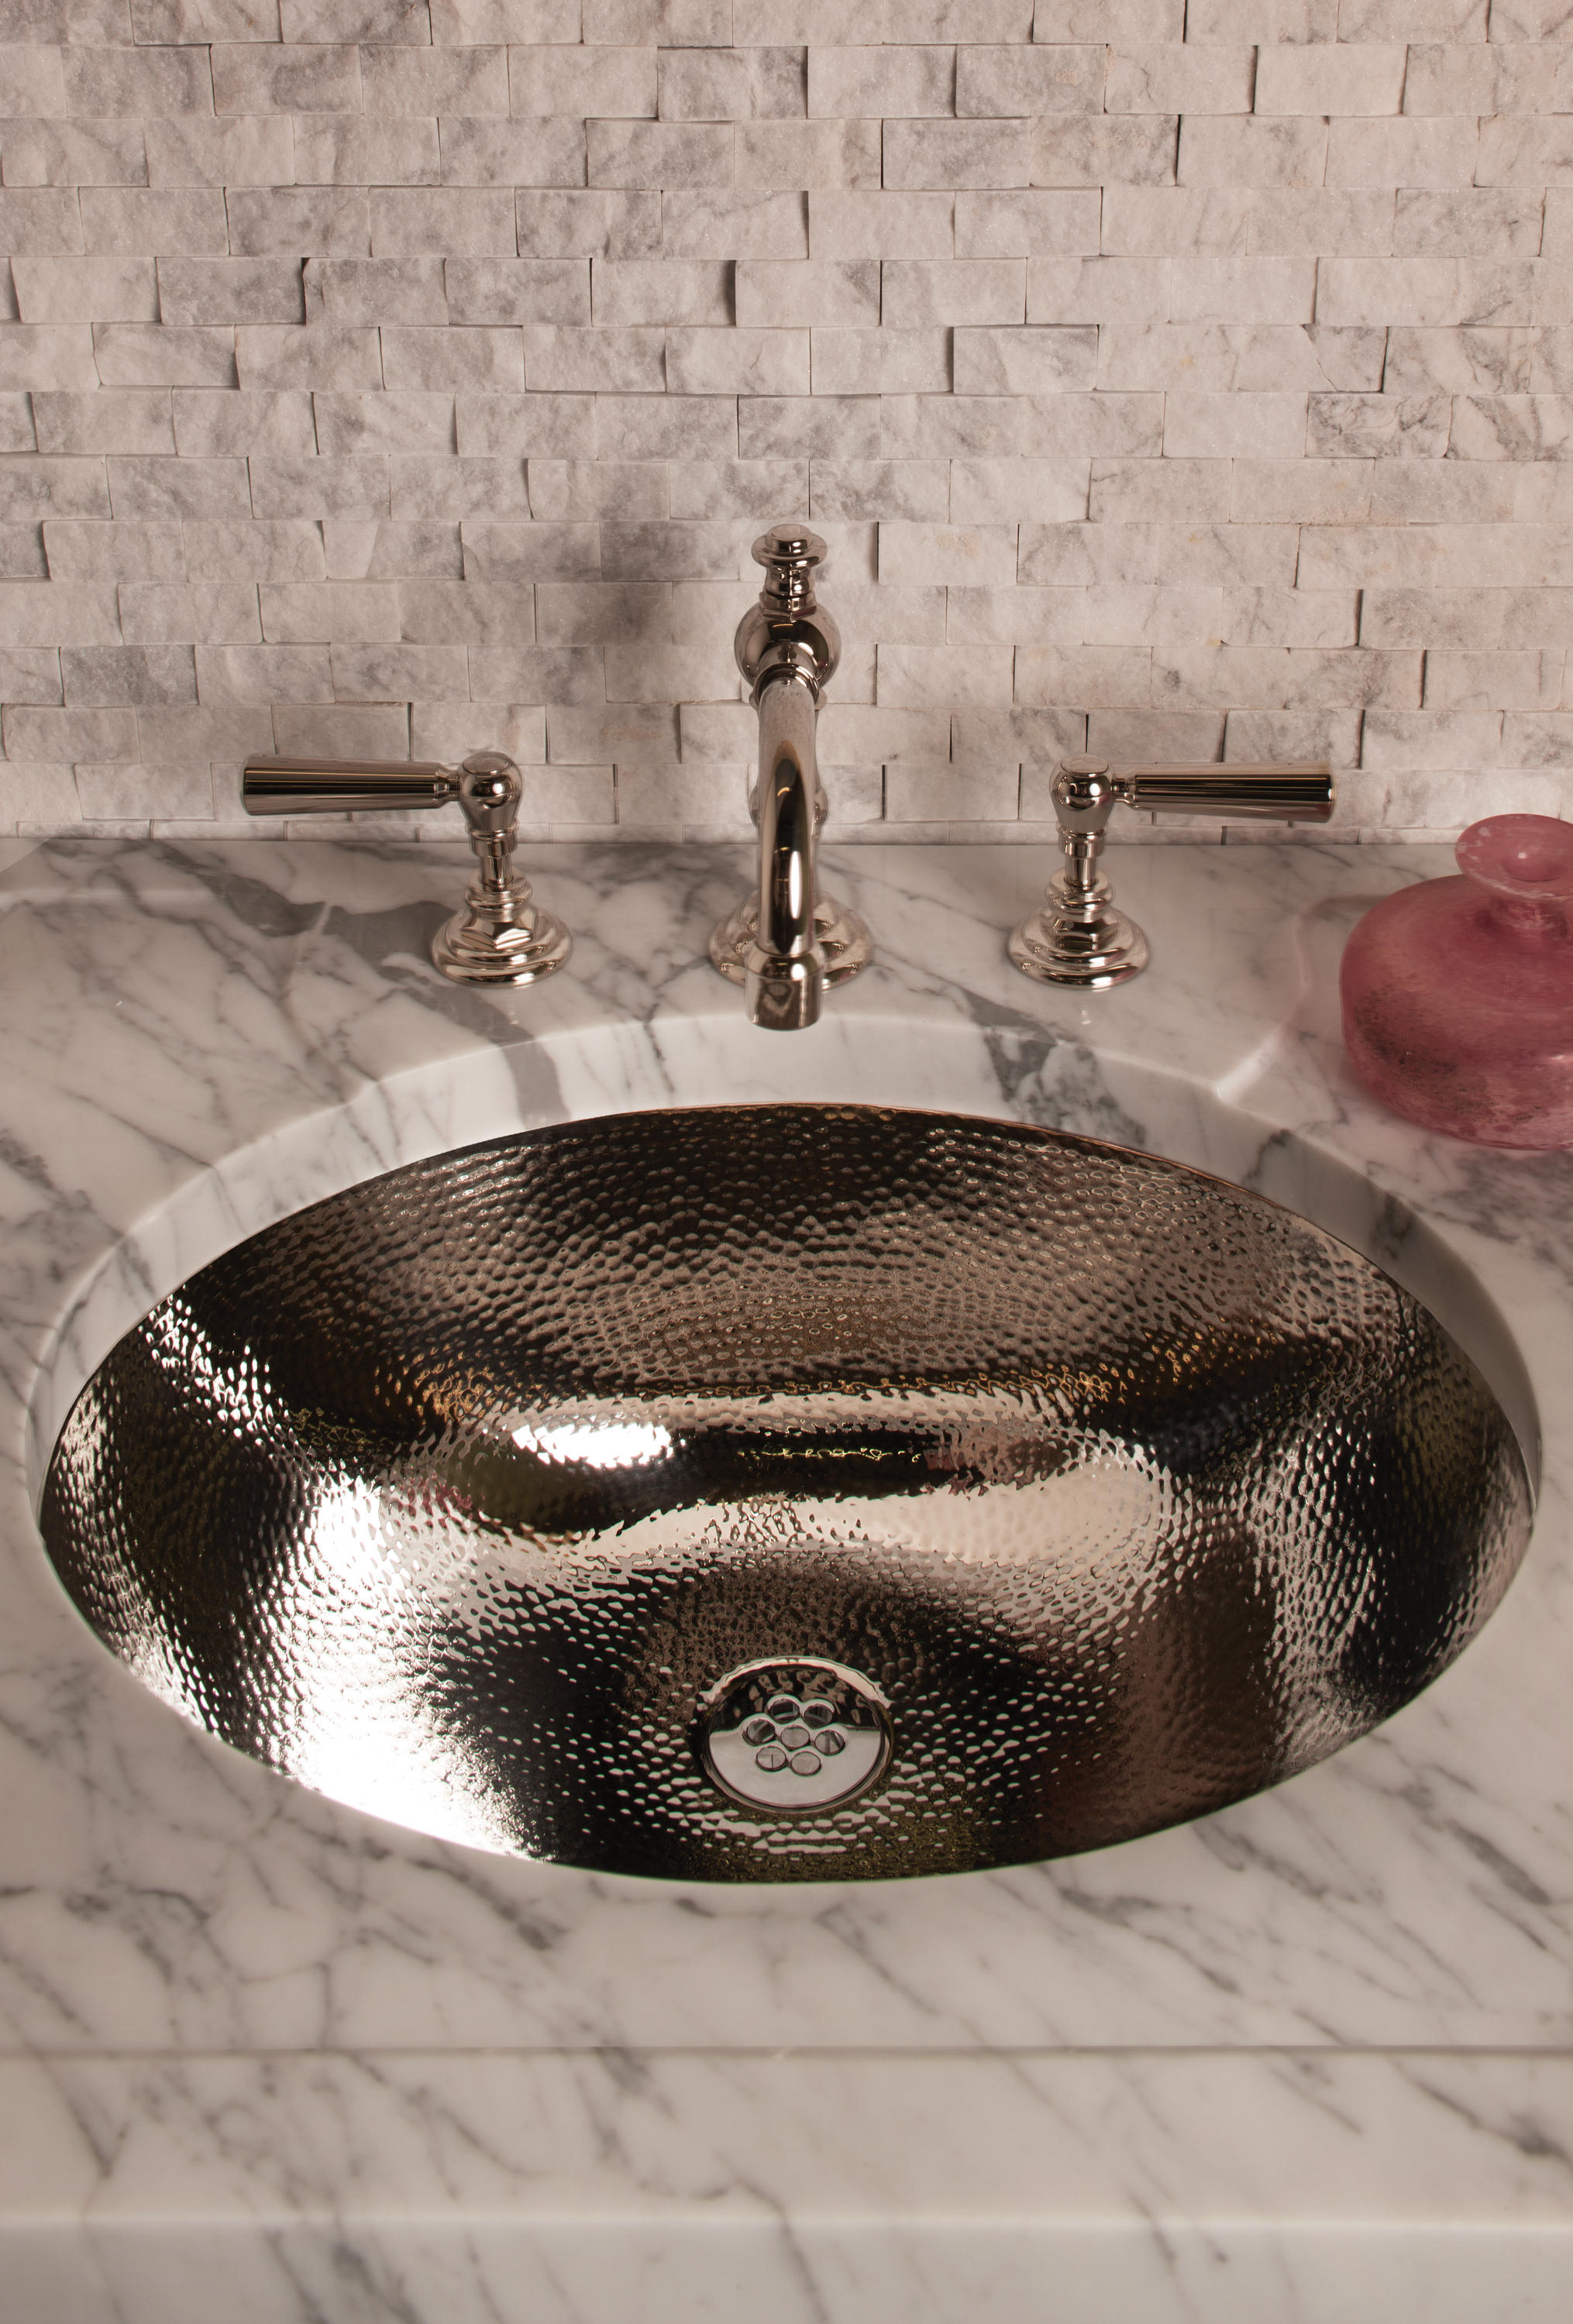 Stainless Steel Oval Bath Sink With